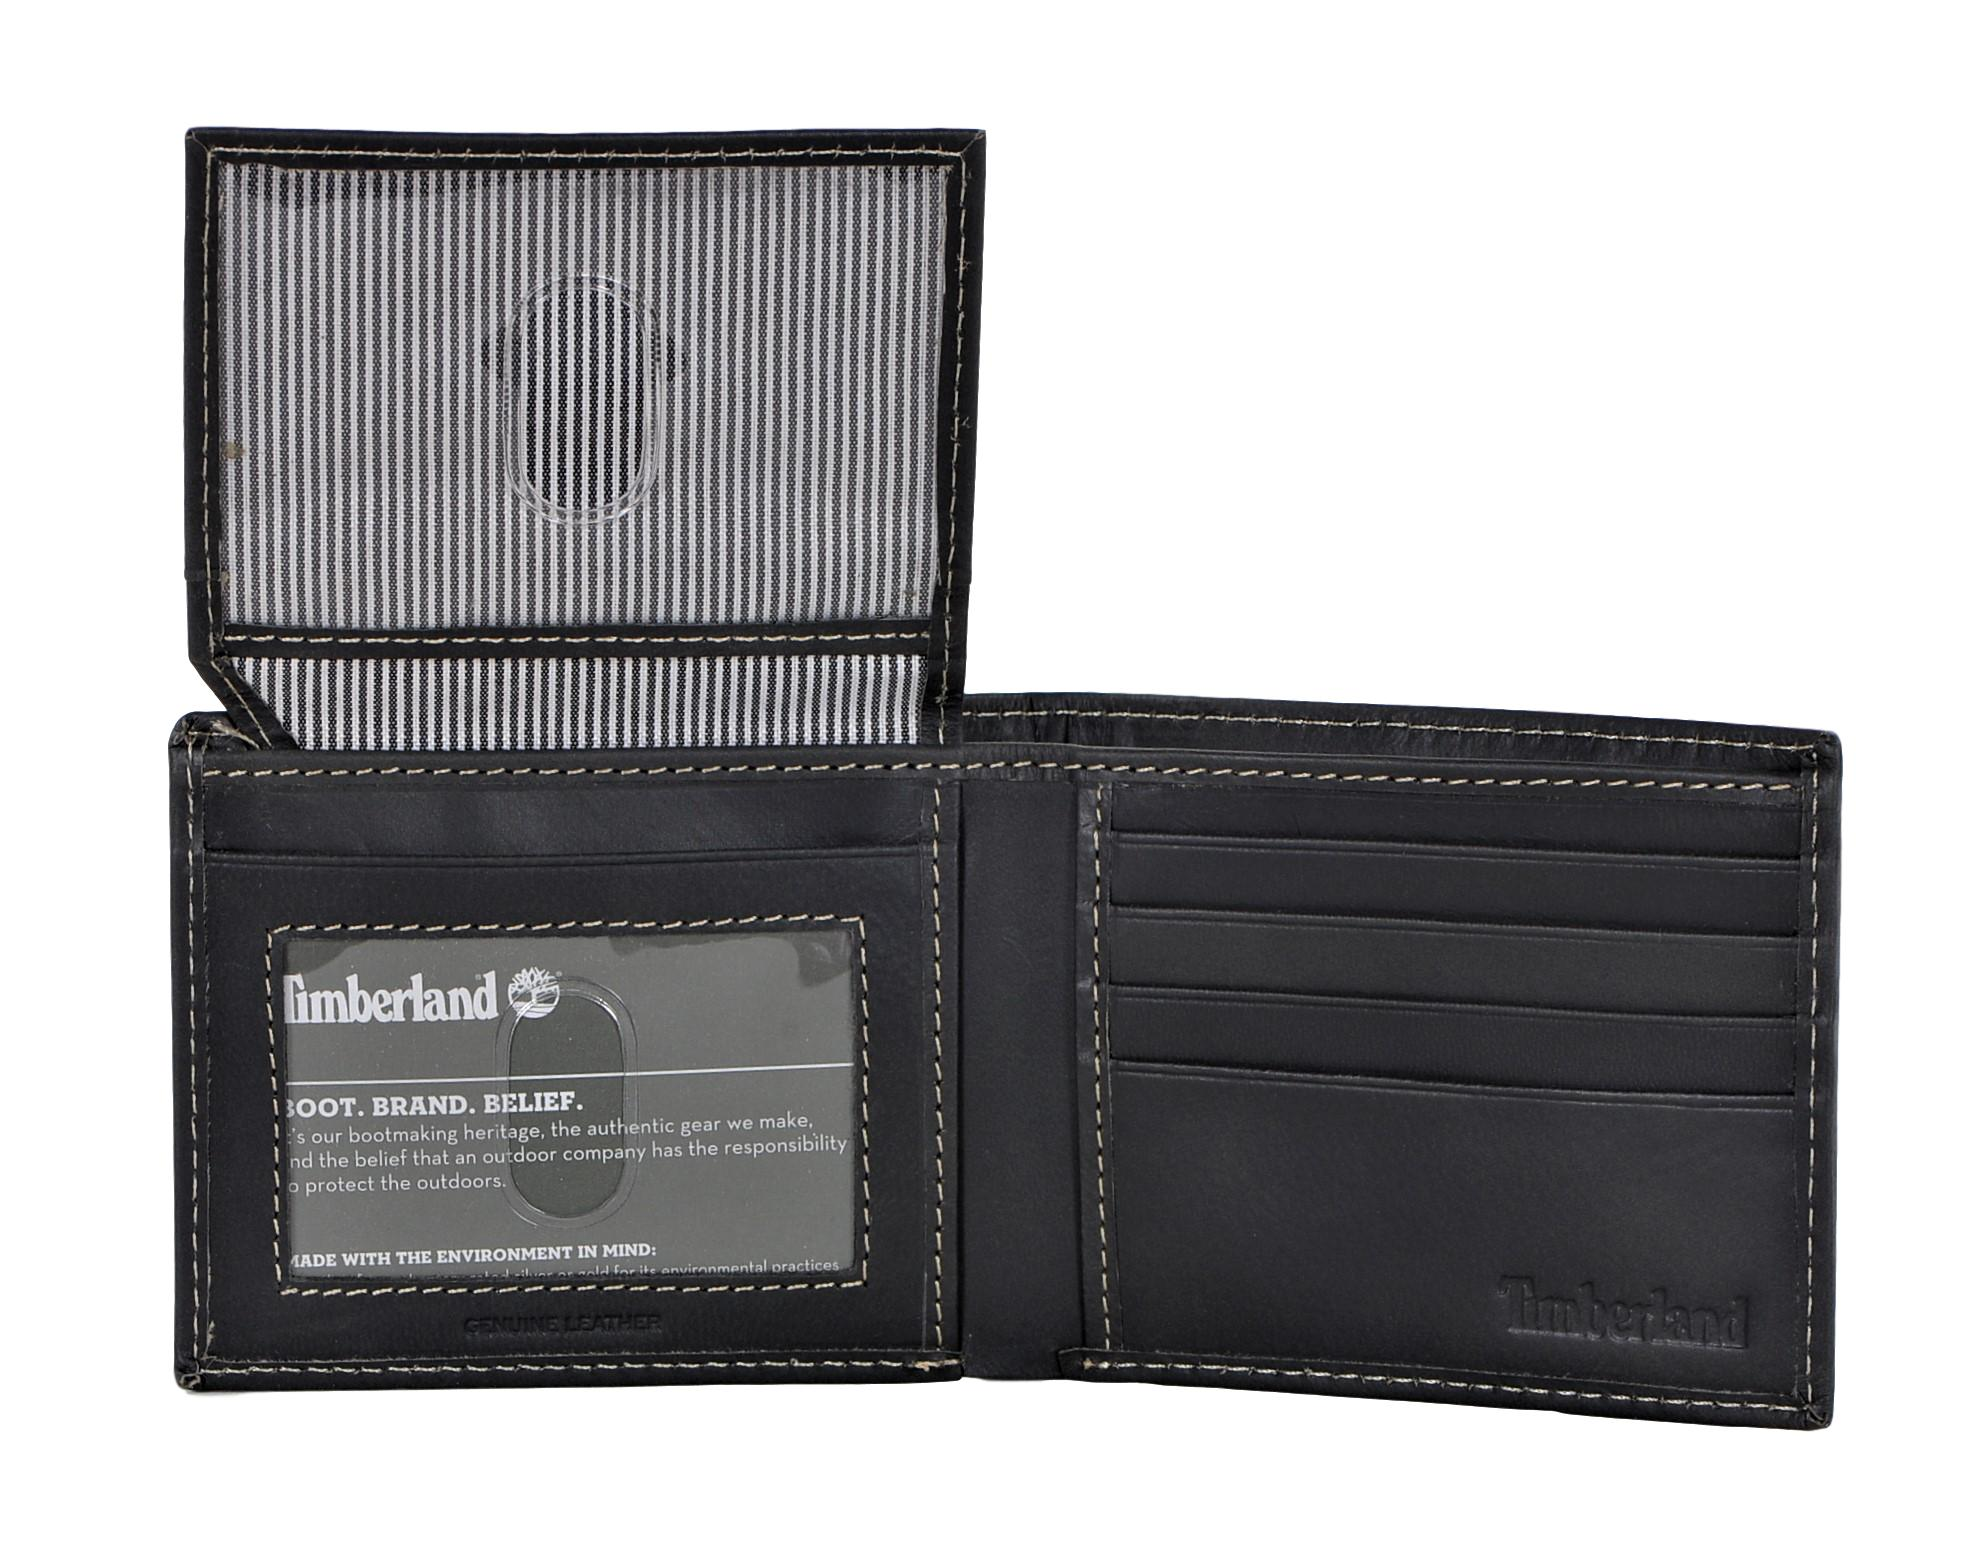 Timberland-Men-039-s-Genuine-Leather-Cloudy-Passcase-Wallet thumbnail 10